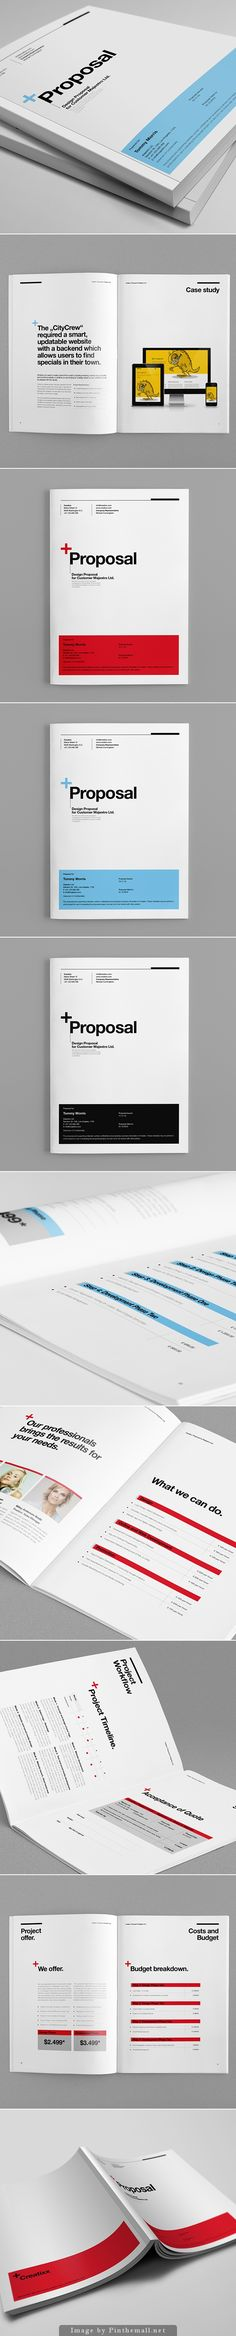 Proposal Template Suisse Design with Invoice - created via… Layout Design, Design Visual, Graphisches Design, Buch Design, Print Layout, Page Design, Editorial Design Layouts, Typography Design, Branding Design